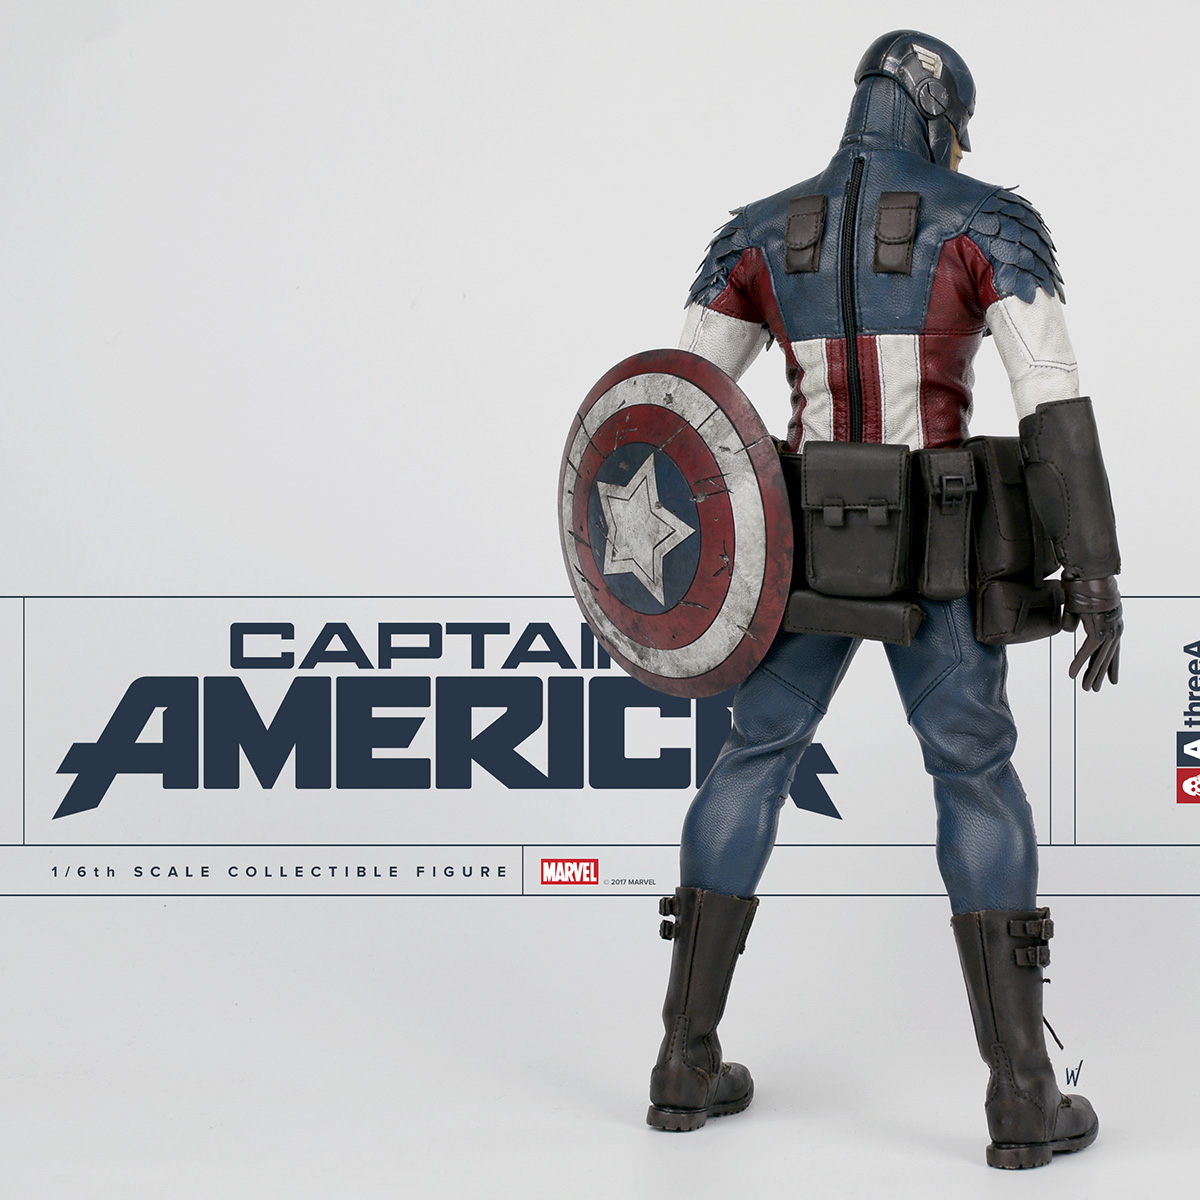 3A_Marvel_CaptainAmerica_Square_Ad_003brev.jpg